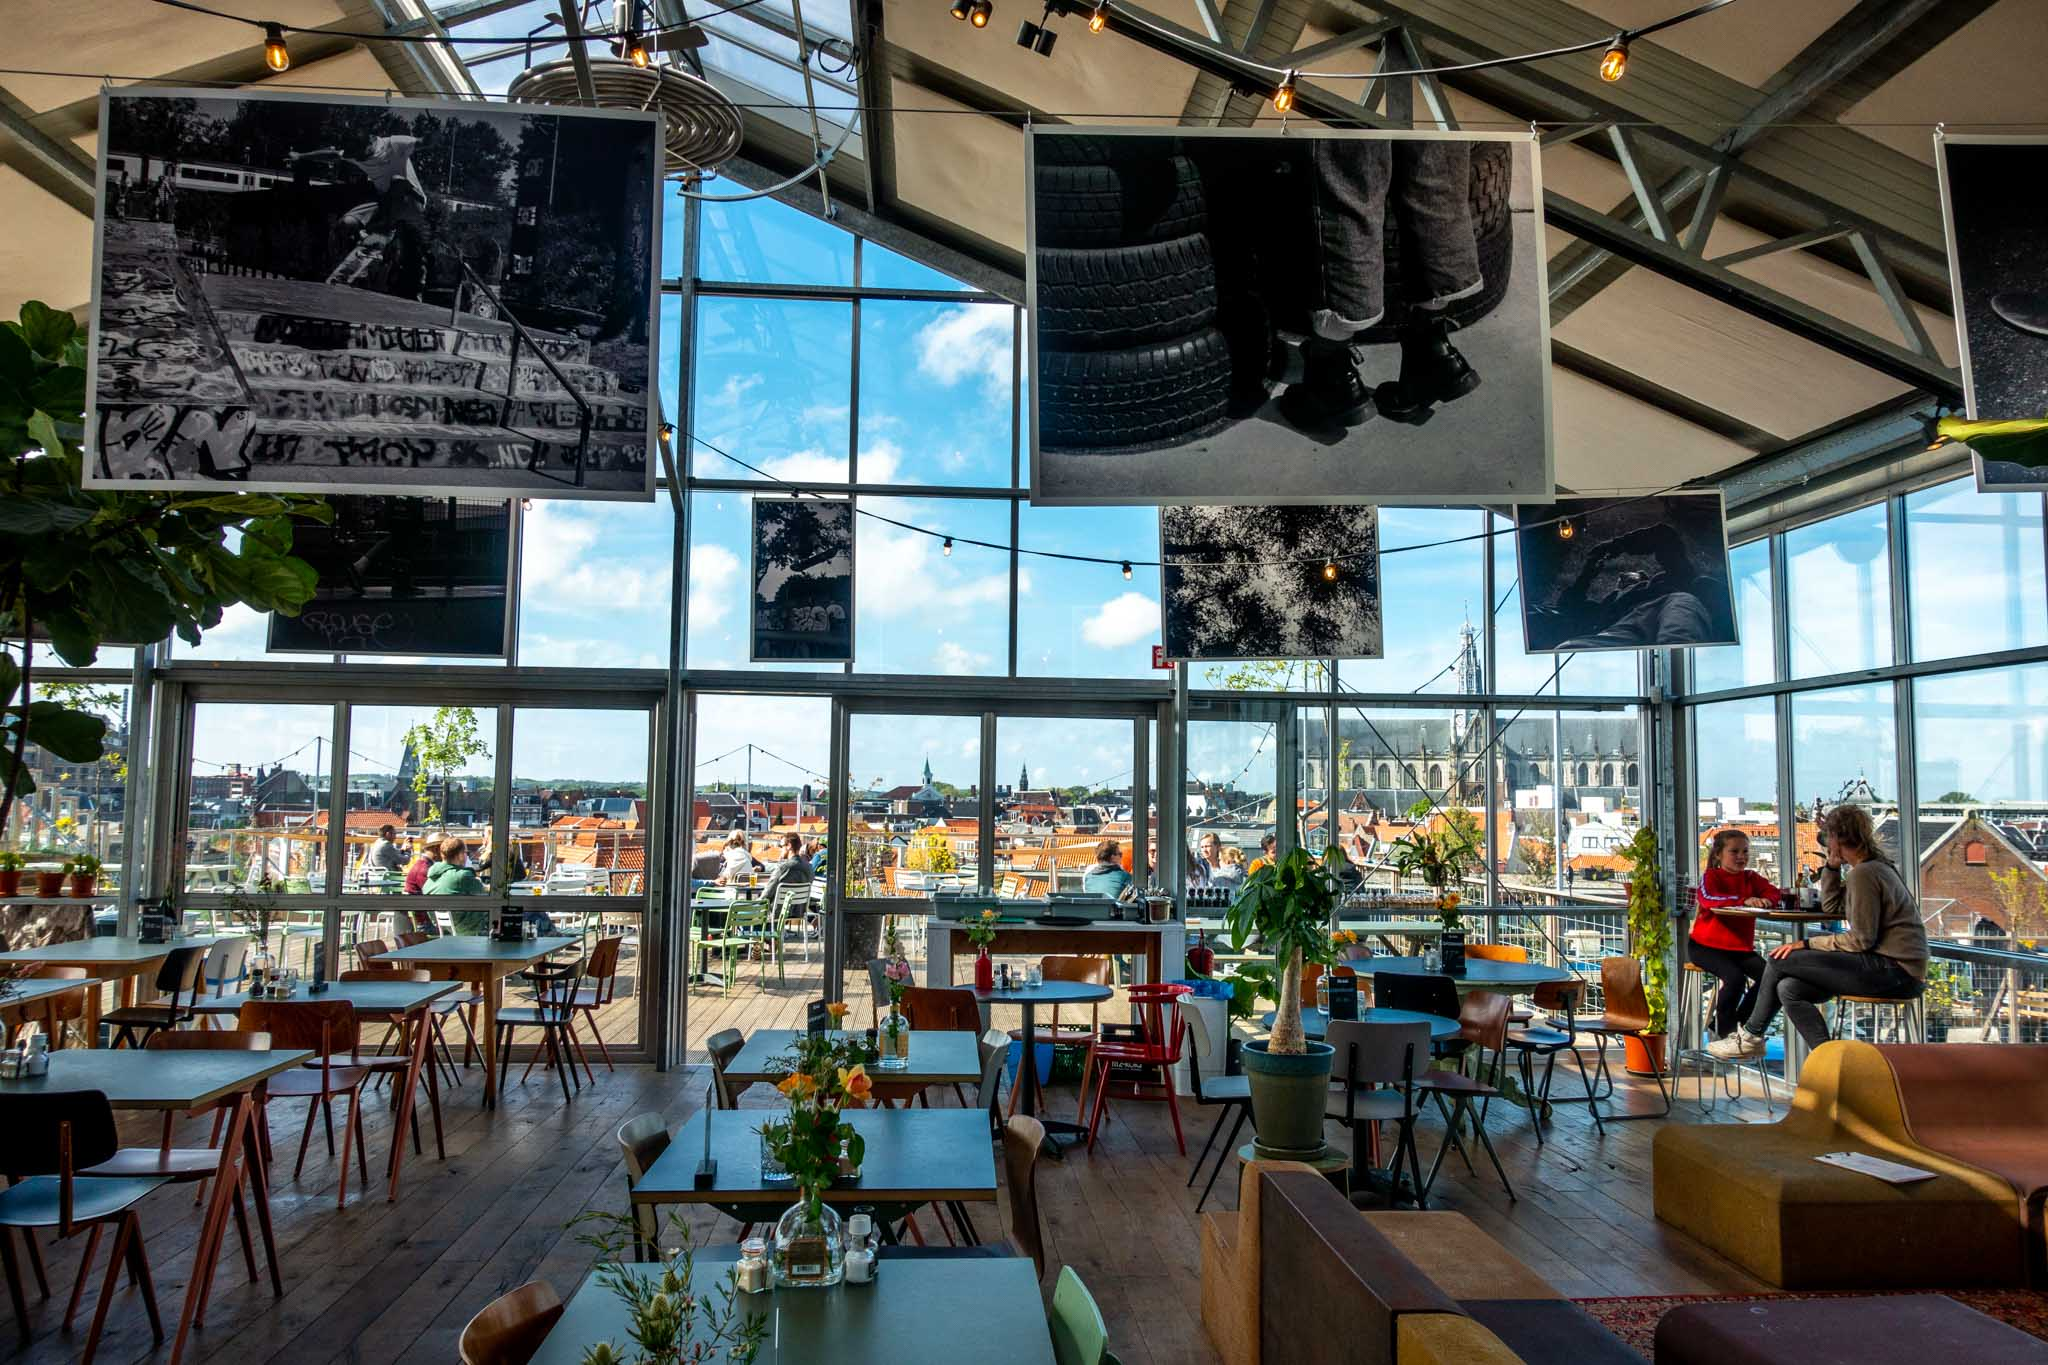 Tables inside a rooftop cafe with glass walls and a view over Haarlem